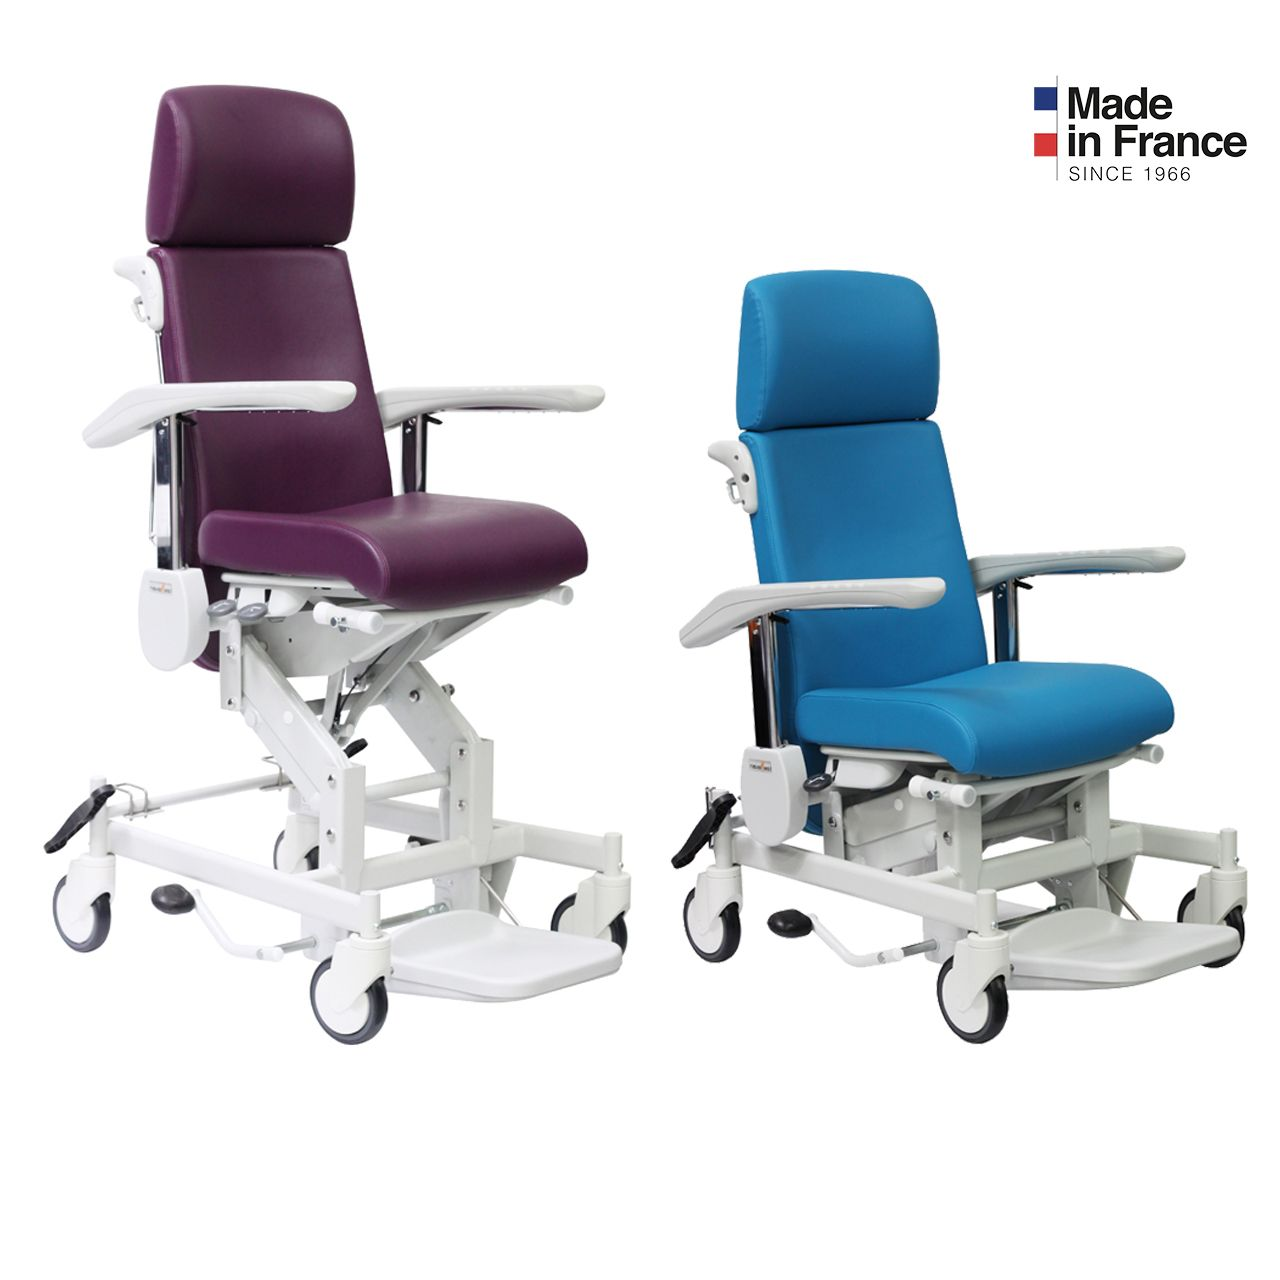 Iris Fauteuil Medical A Hauteur Variable Madeinfrance Personnel Soignant Fauteuil Medical Medical